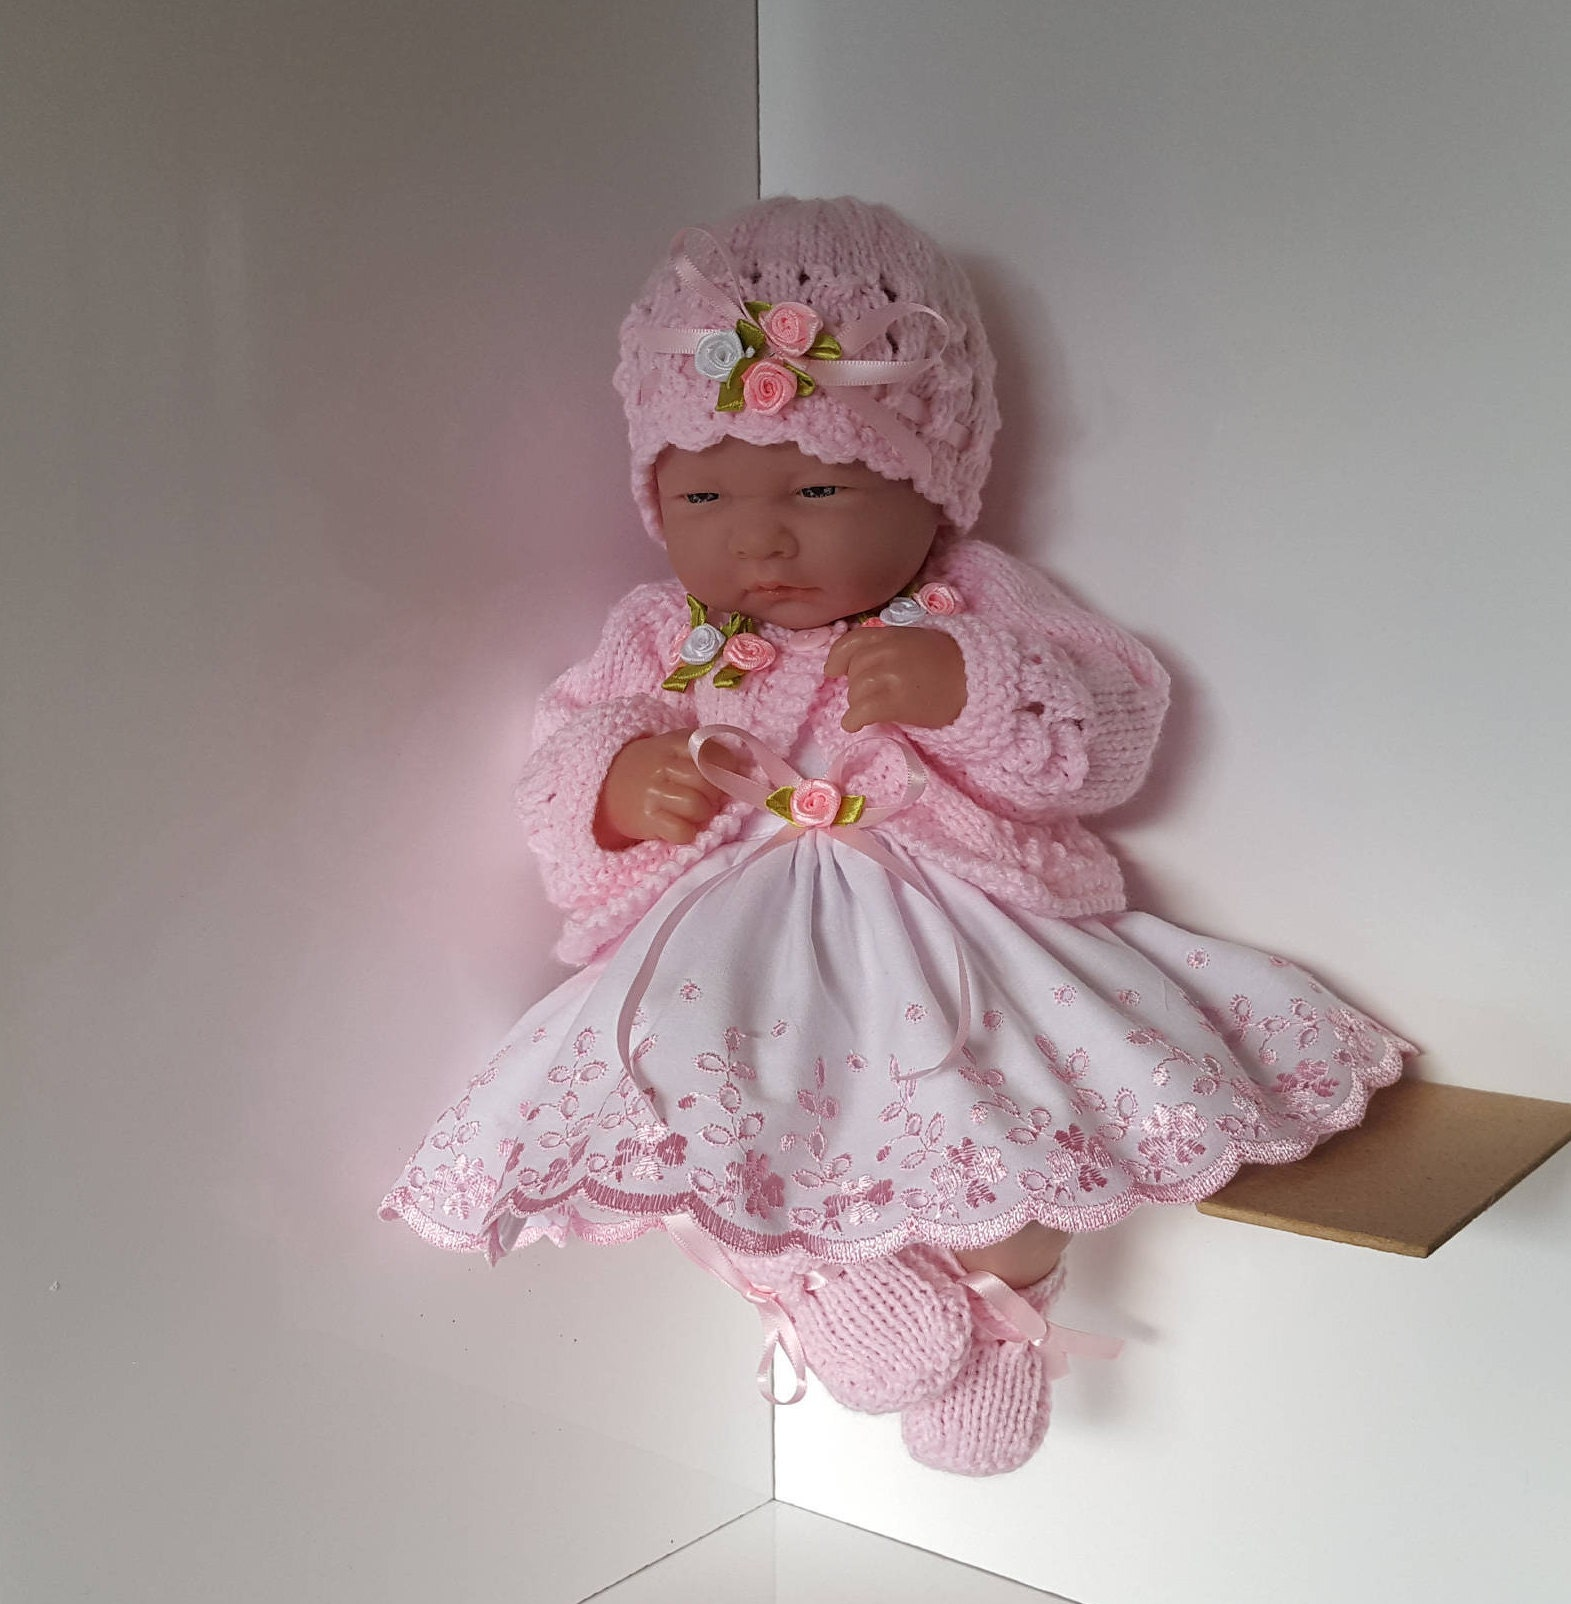 Handmade Baby Dolls Clothes Ensemble for 14 inch dolls  BERENGUER  CUPCAKE La Newborn  Reborn or similar